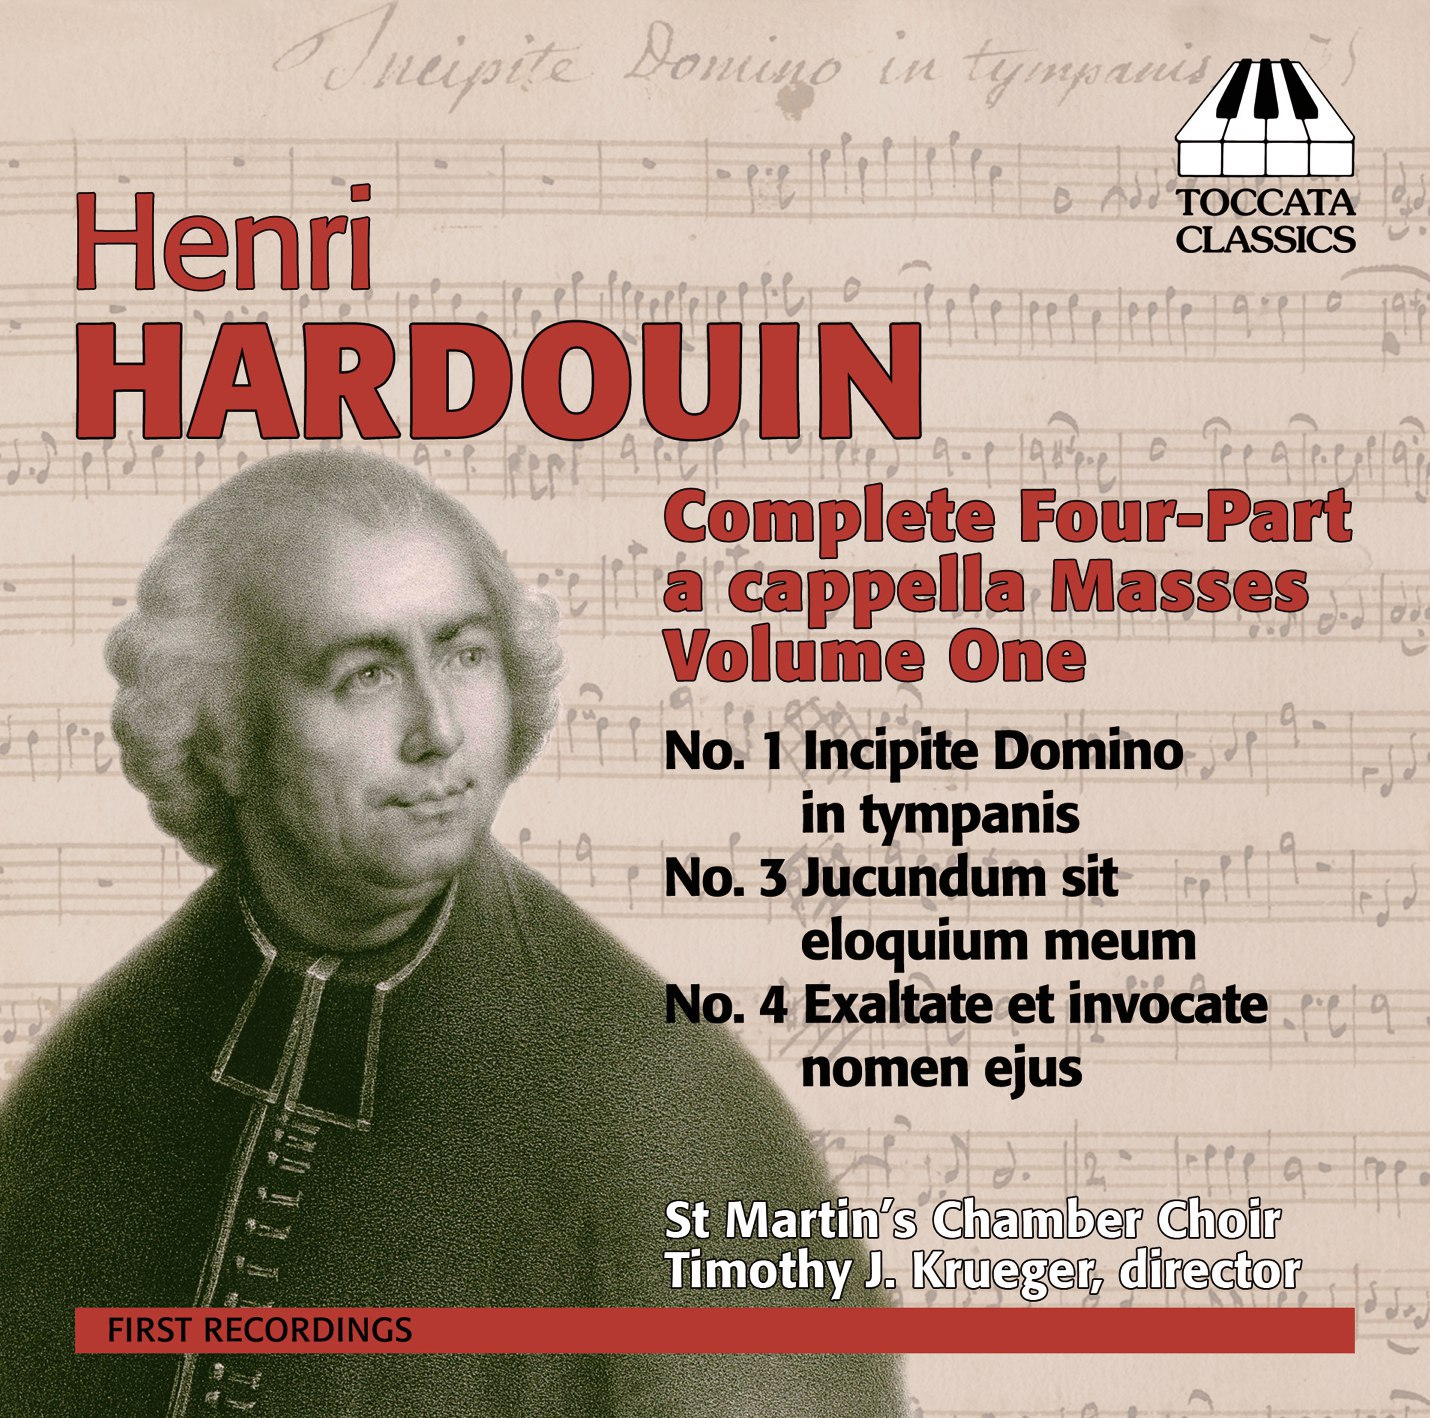 Henri Hardouin: Complete Four-Part <em>a cappella</em> Masses